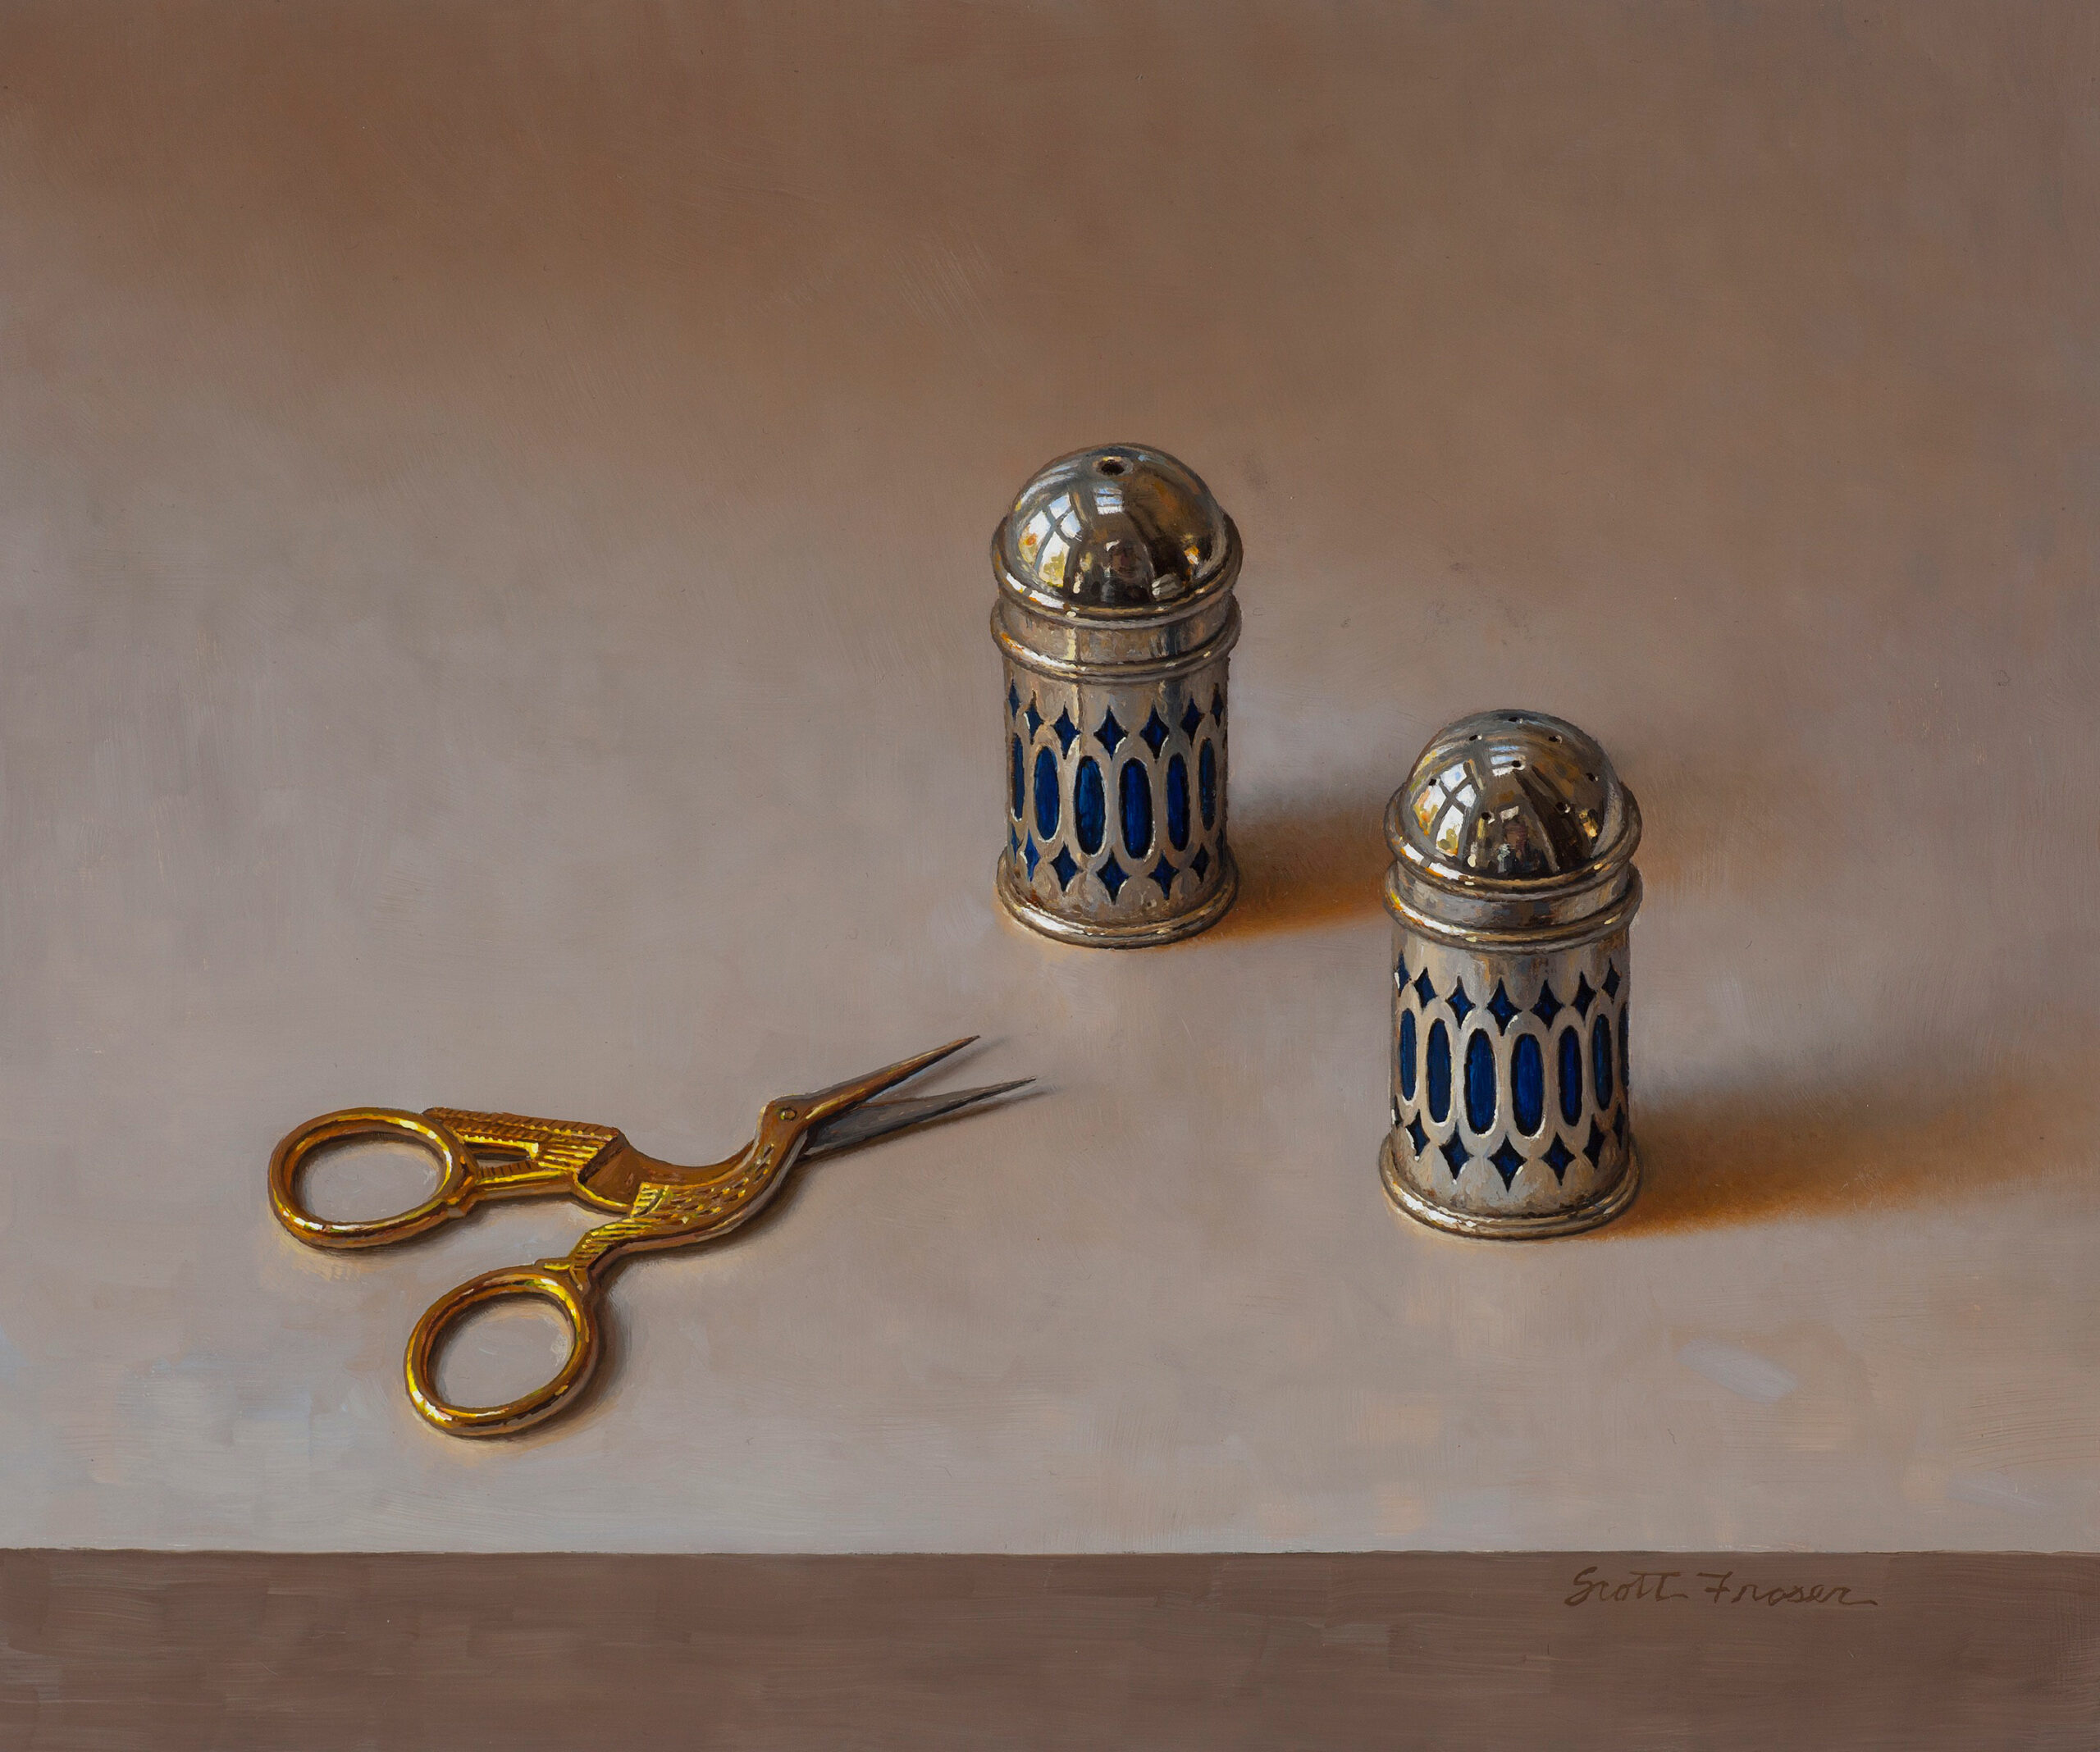 Fraser,-Scott,-Salt-and-Pepper-Shakers,-Oil-on-board,-10-x-12,-$9,000